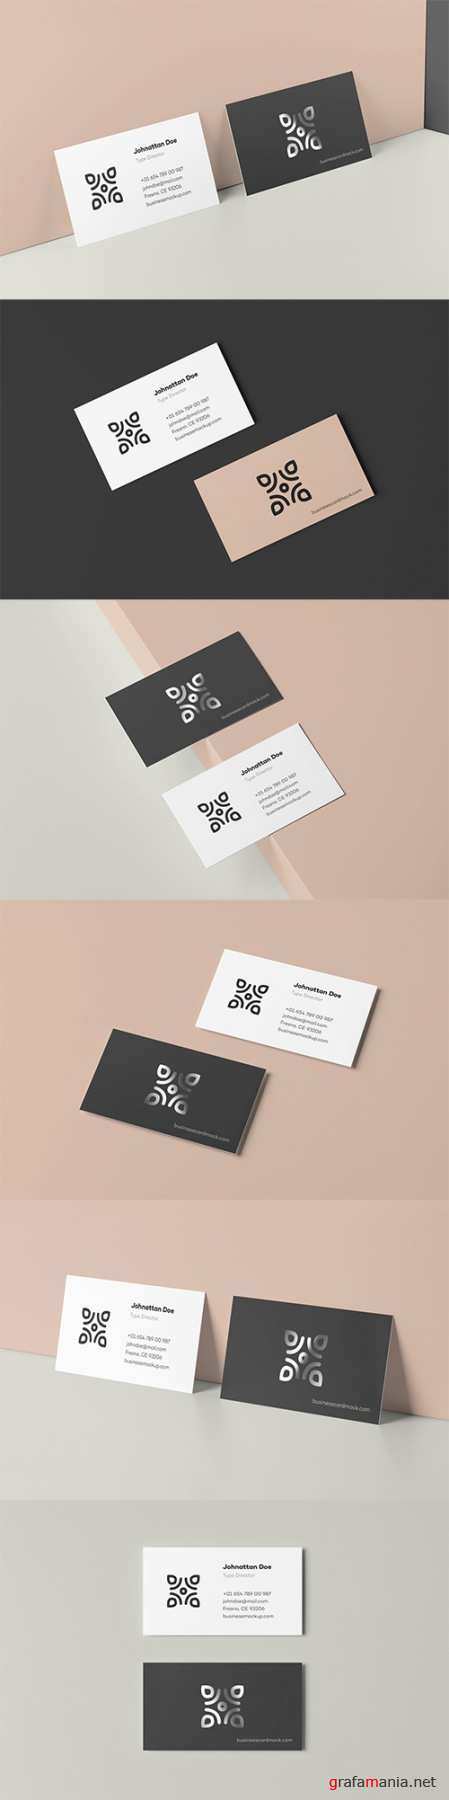 Business Card Mock-up 90x50